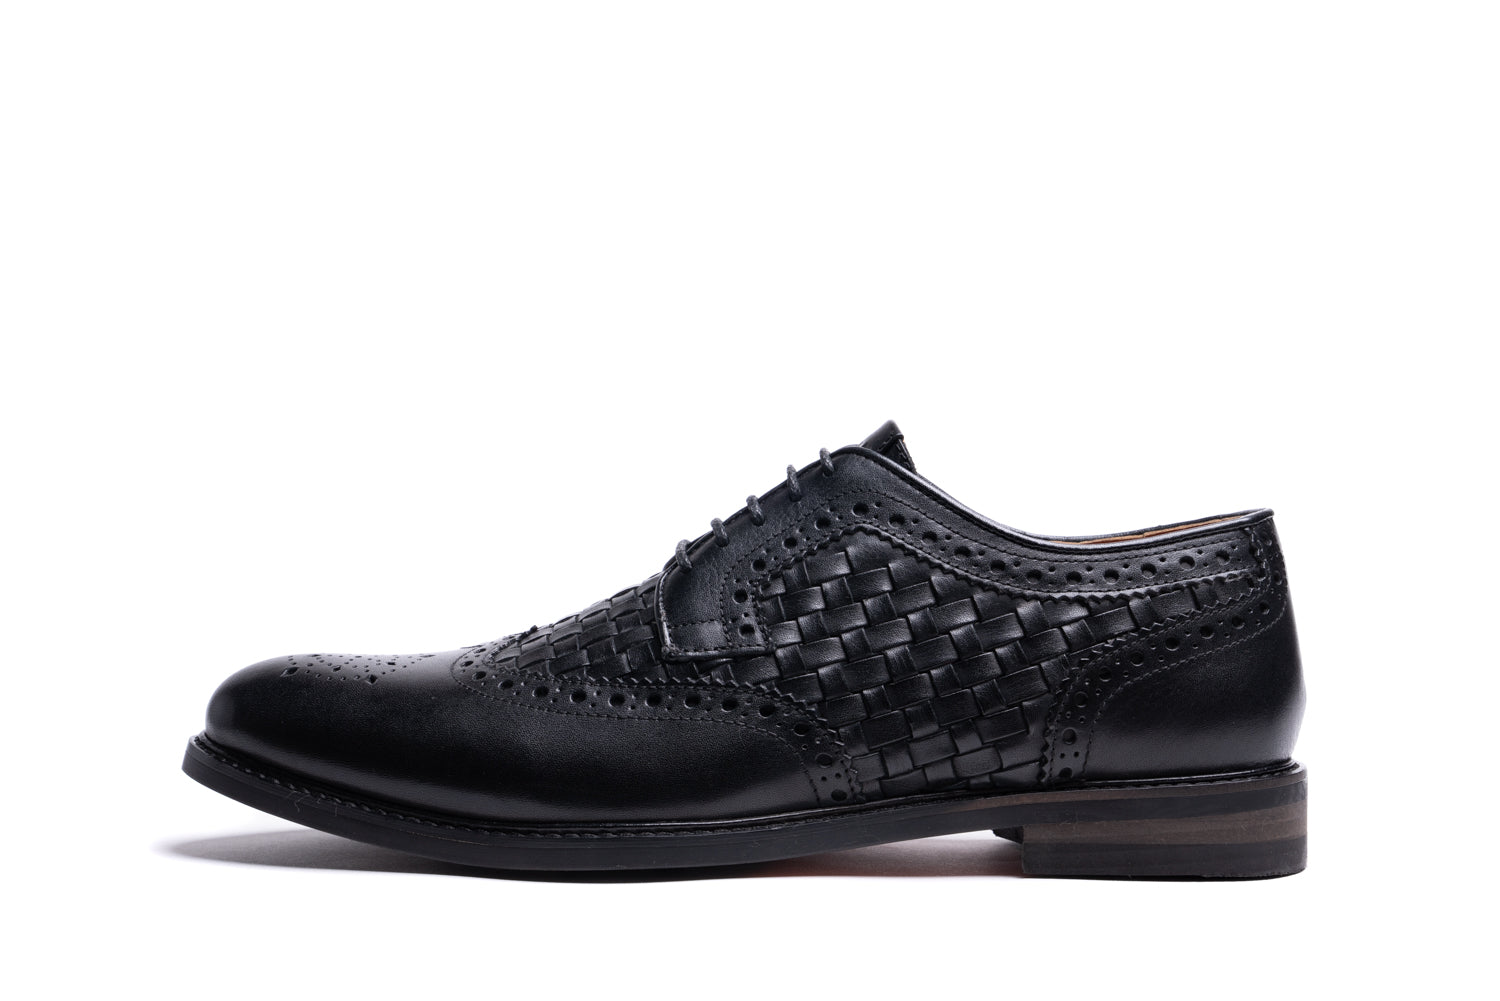 BLUNDELL // BLACK-MEN'S SHOE | LANX Proper Men's Shoes